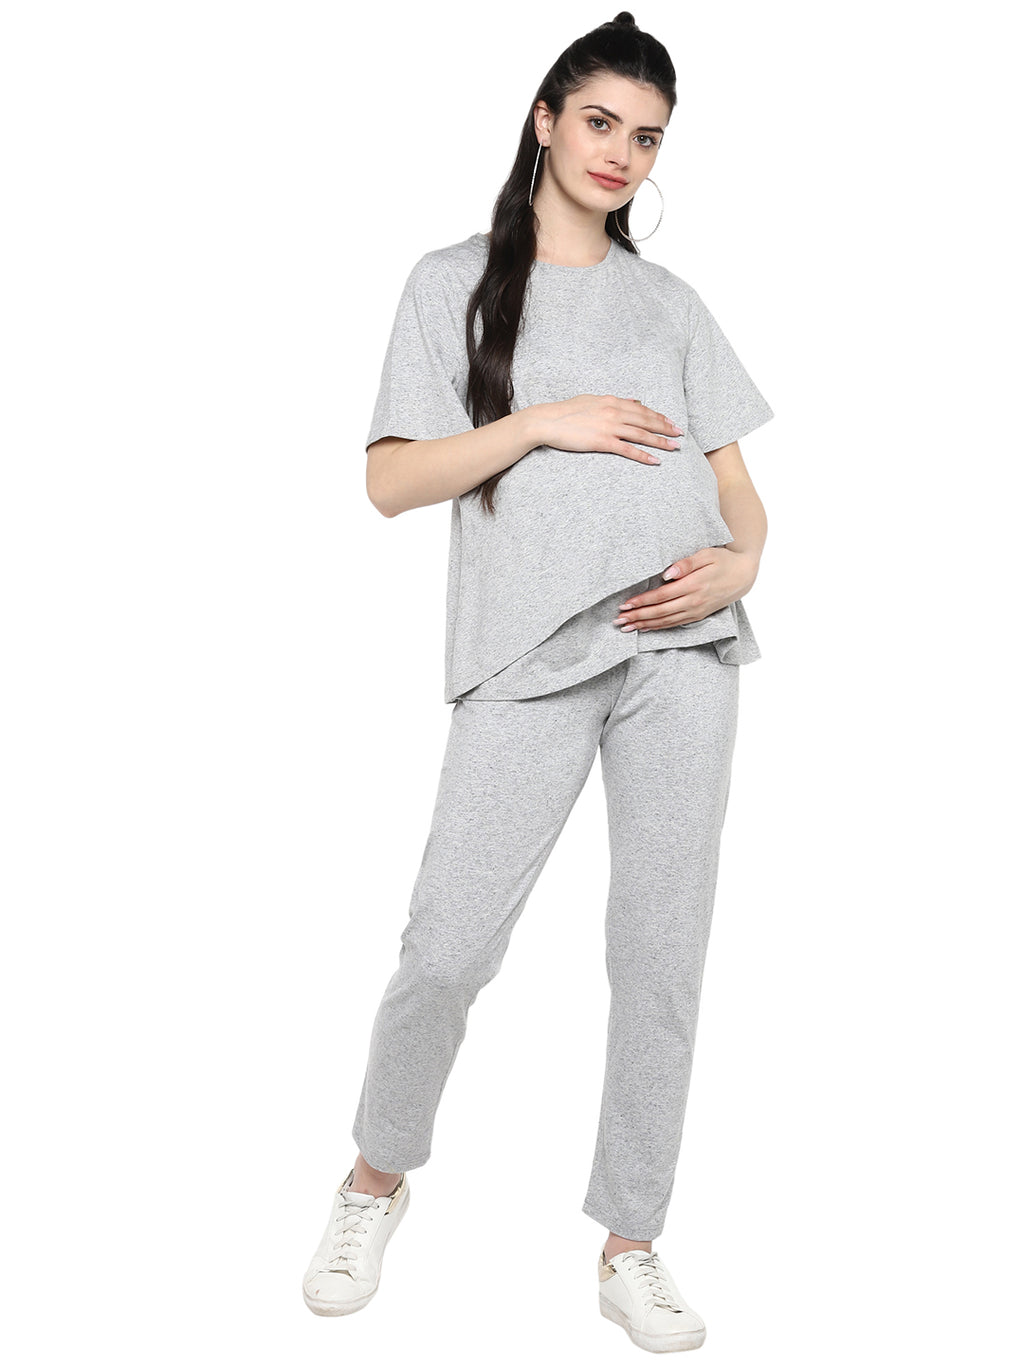 Knitted Grey Nursing  Night wear set - momsoon maternity fashion wear